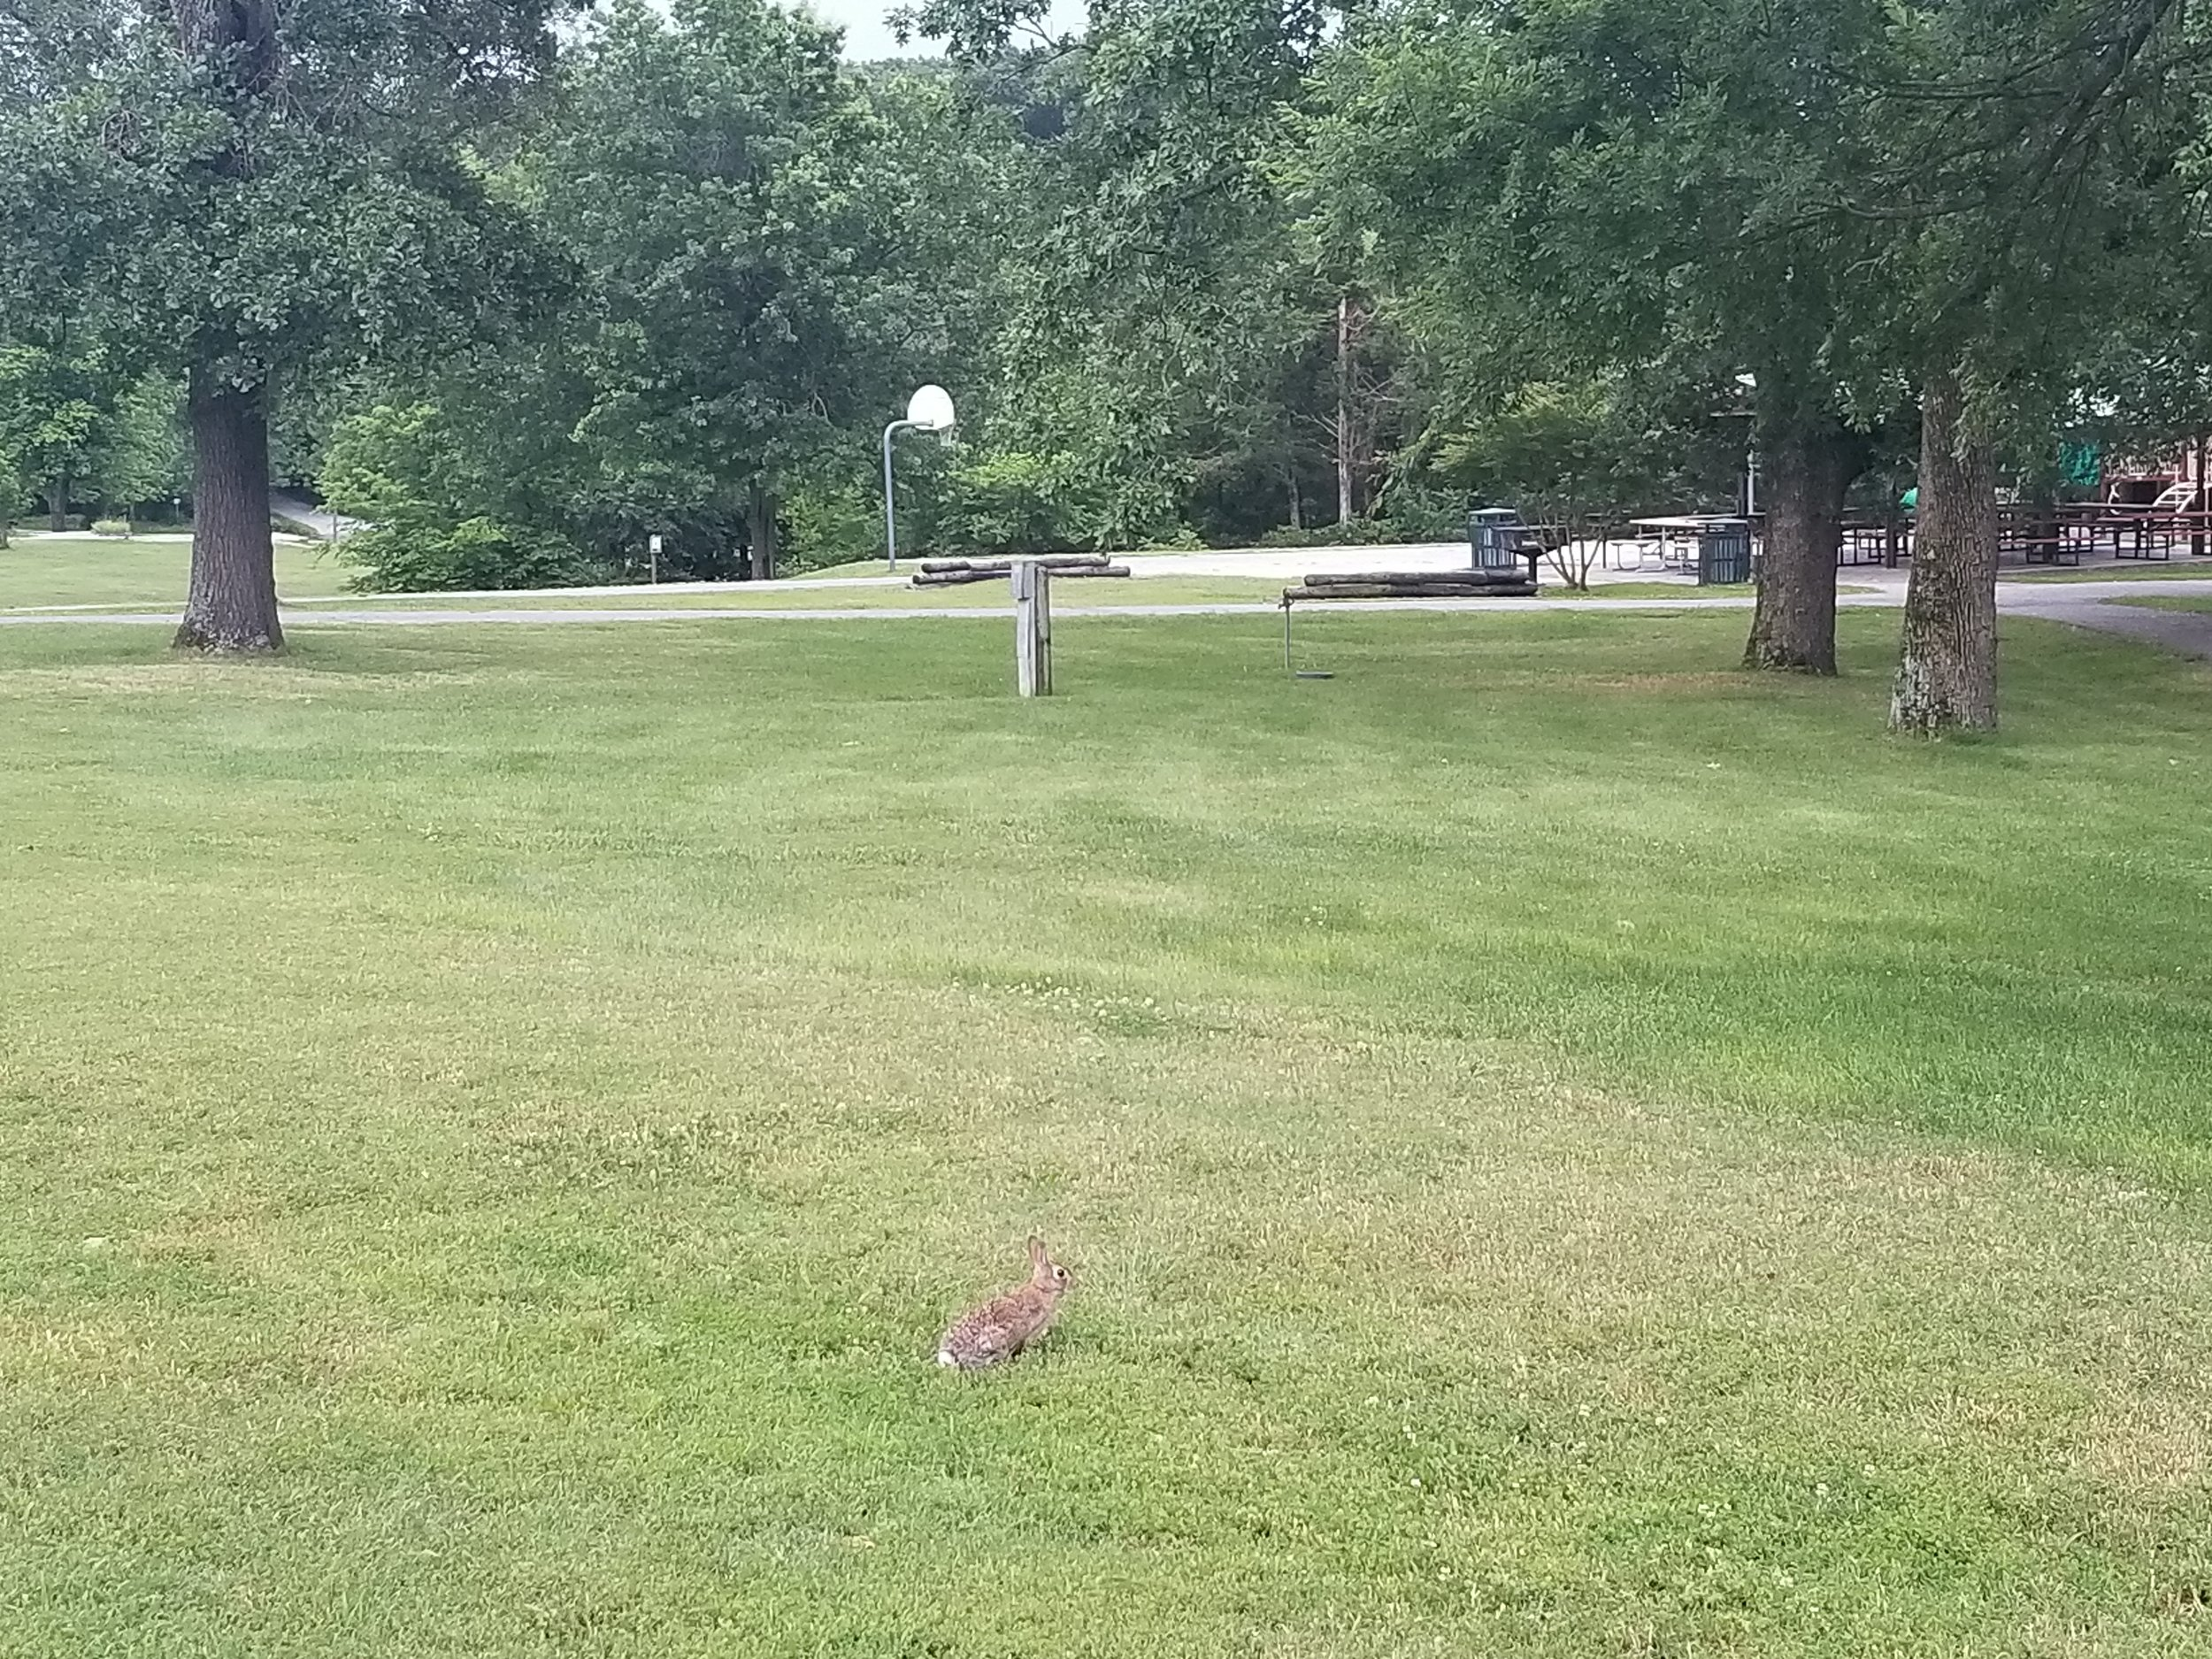 Walking through the park and this rabbit let us get surprisingly close